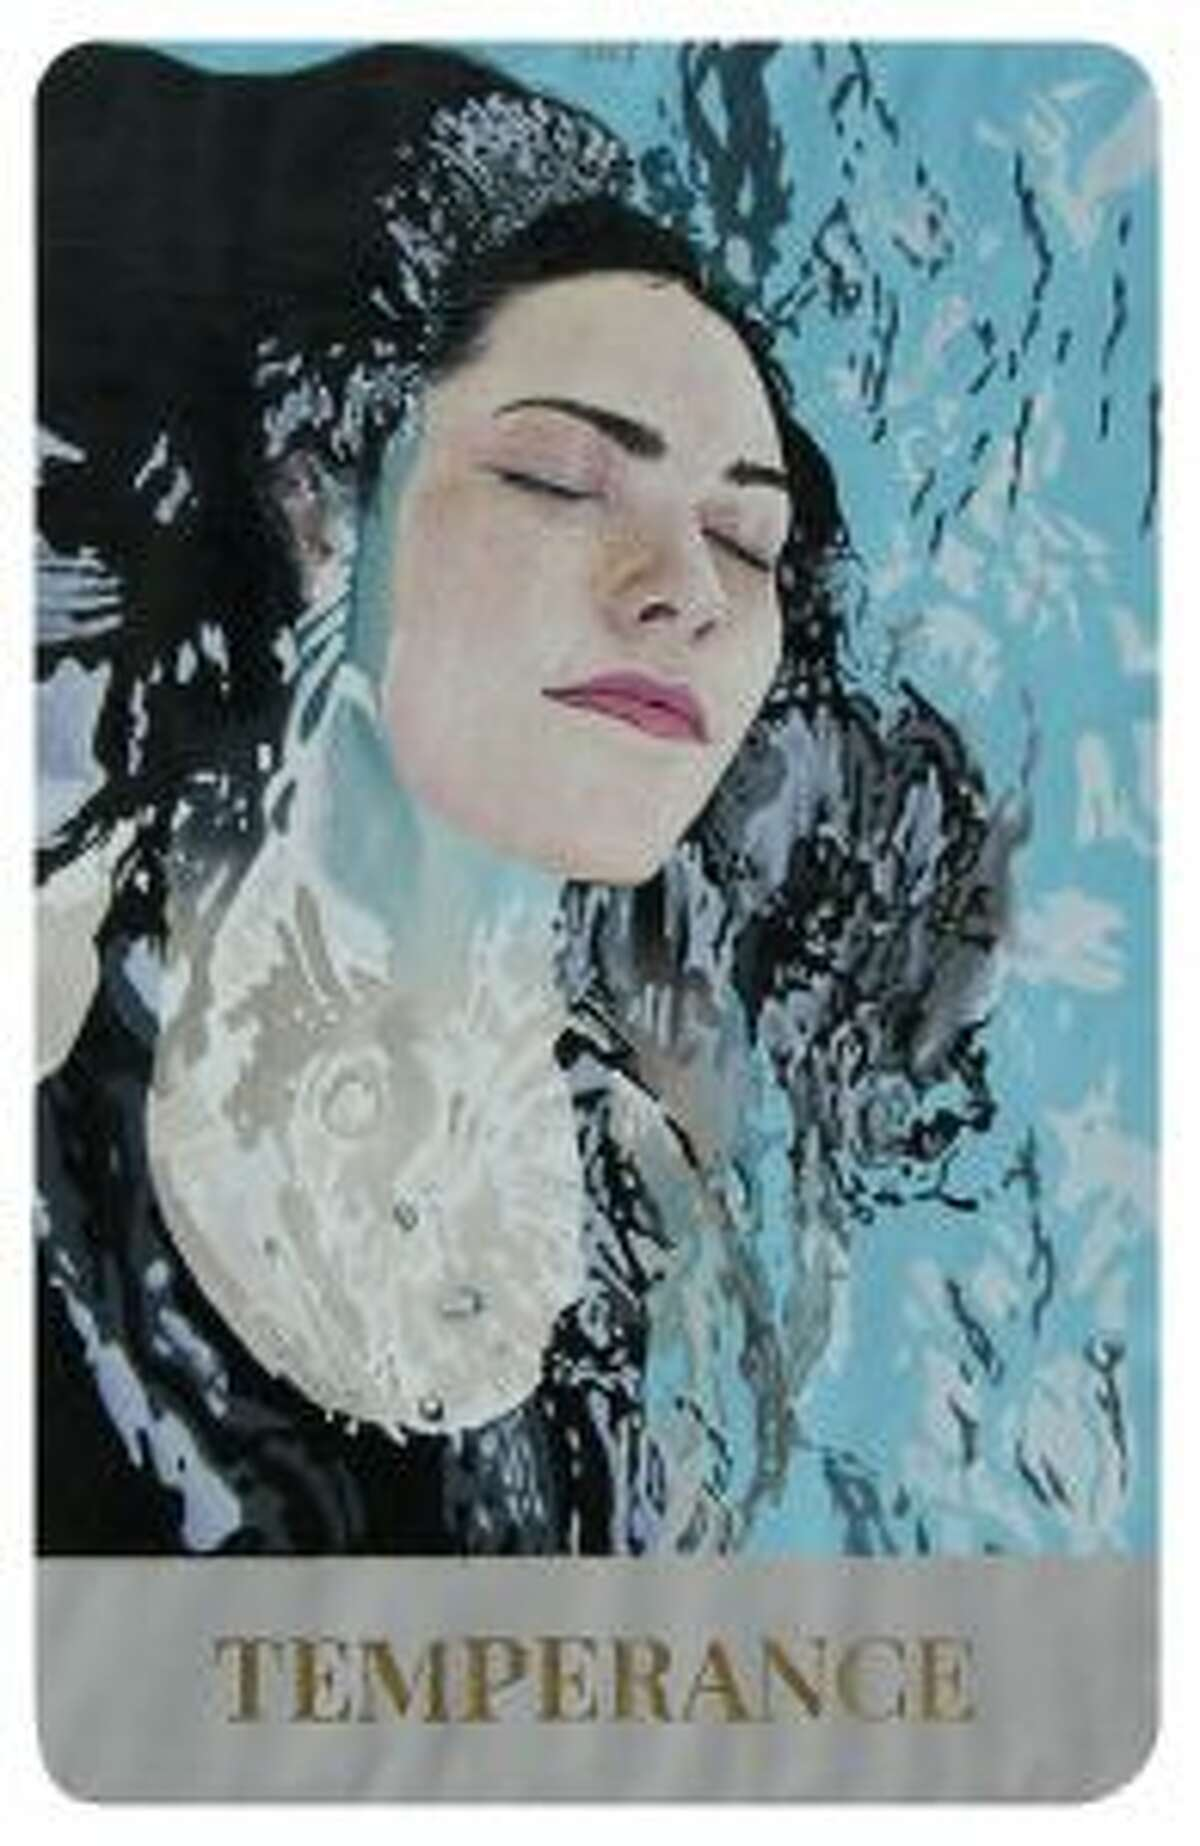 Temperance by Liam Morrill, a senior at Darien High School. Oil paint, acrylic, and gold leaf.